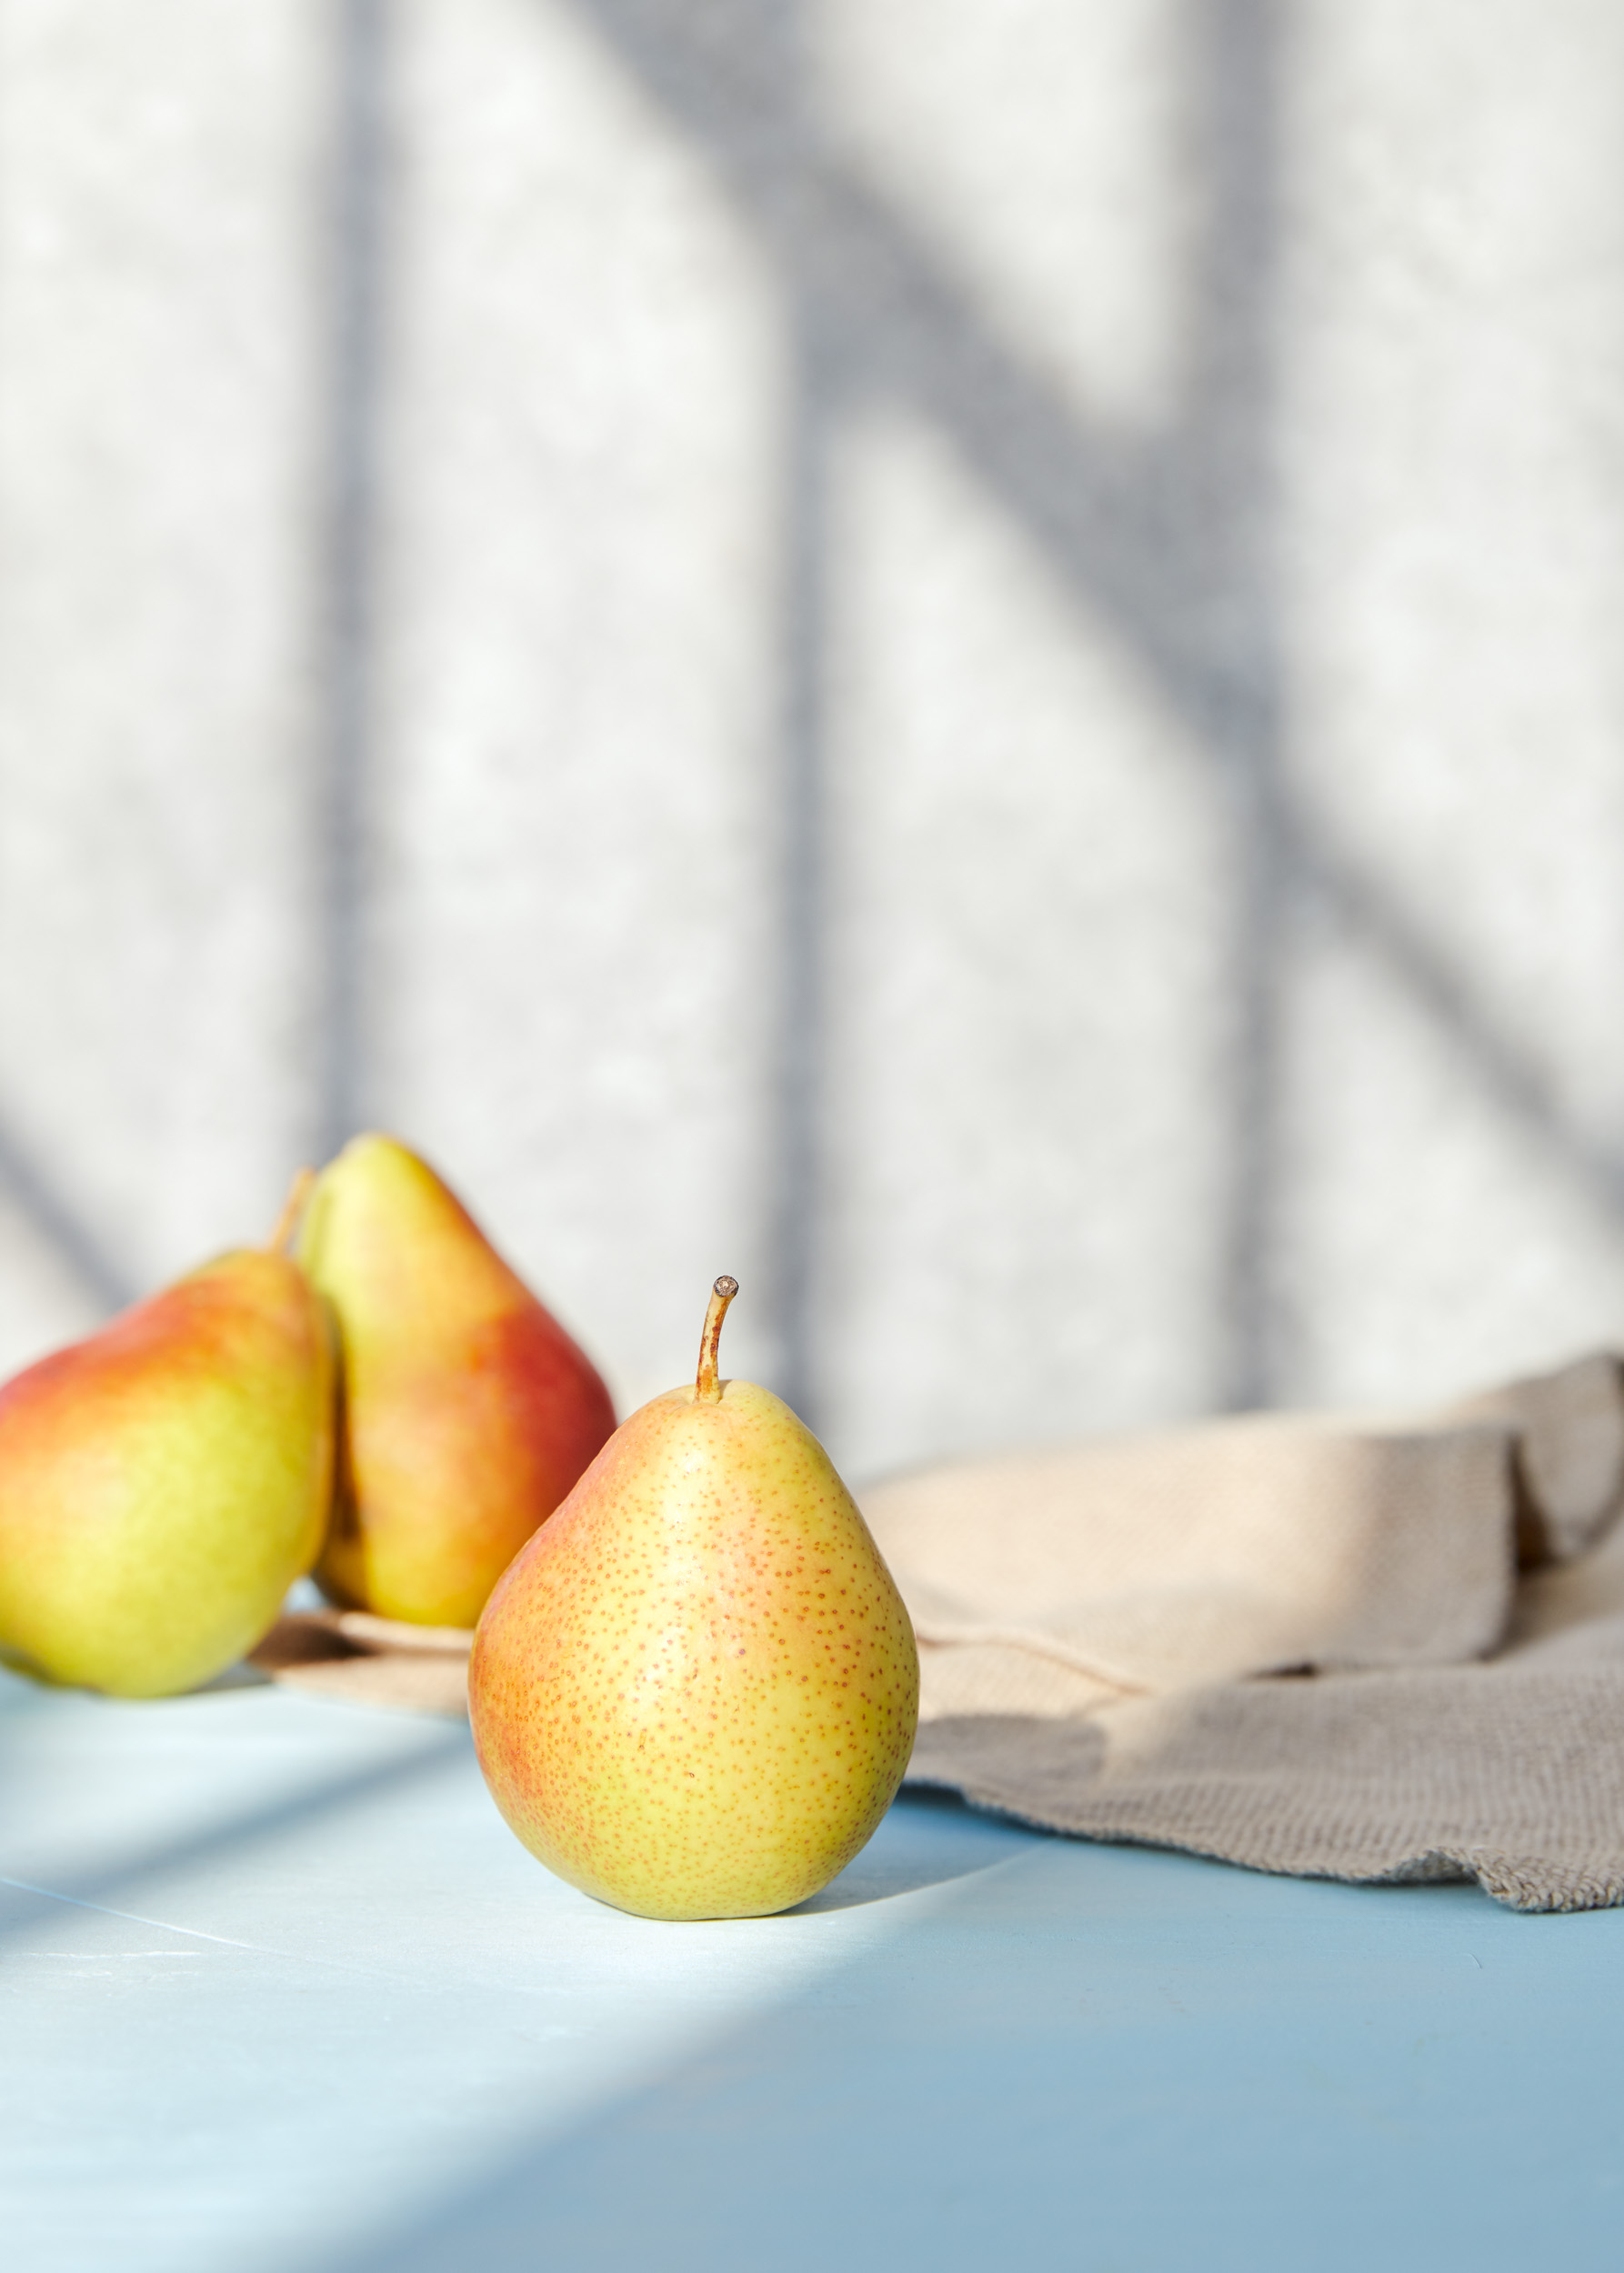 2018.10_014_SmartMealPrepBegin_Pears